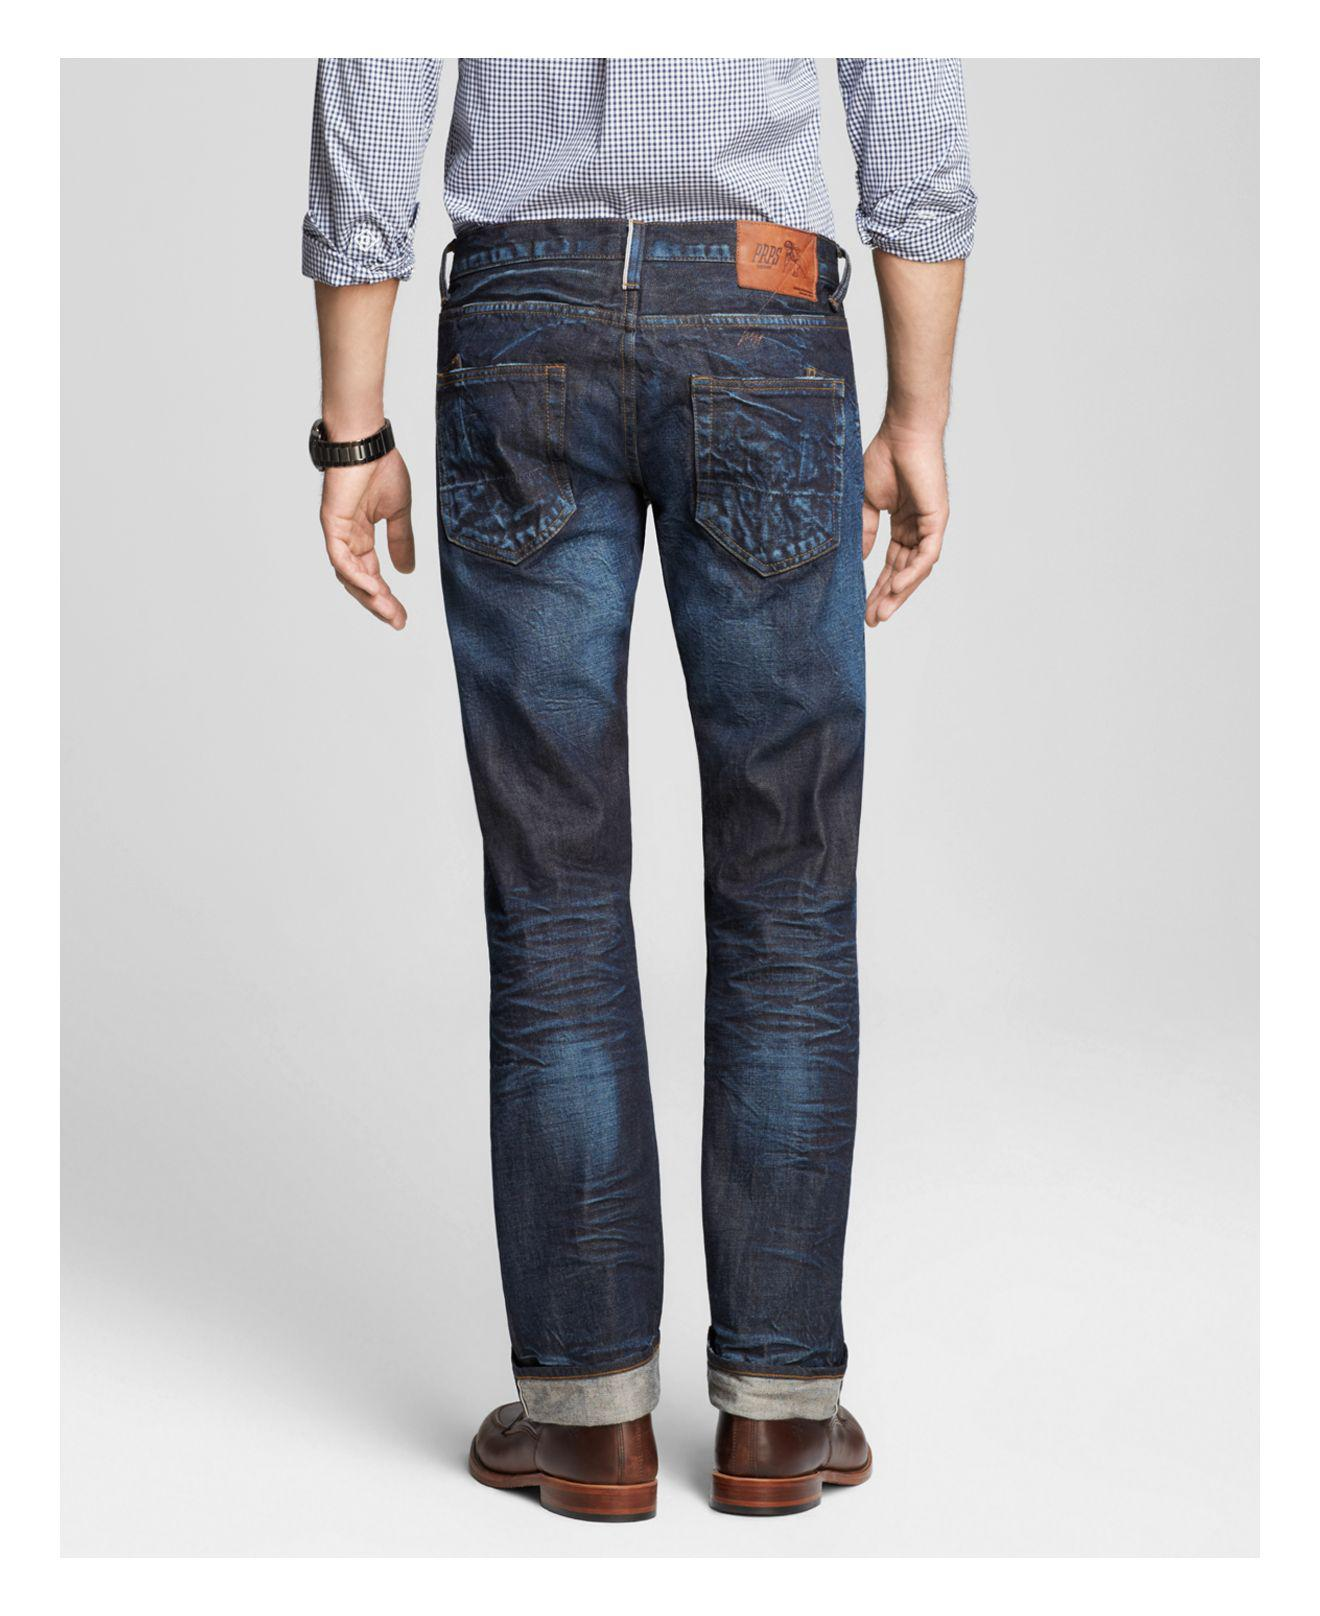 PRPS Denim Jeans - Barracuda Straight Fit In Six Month Wash in Blue for Men